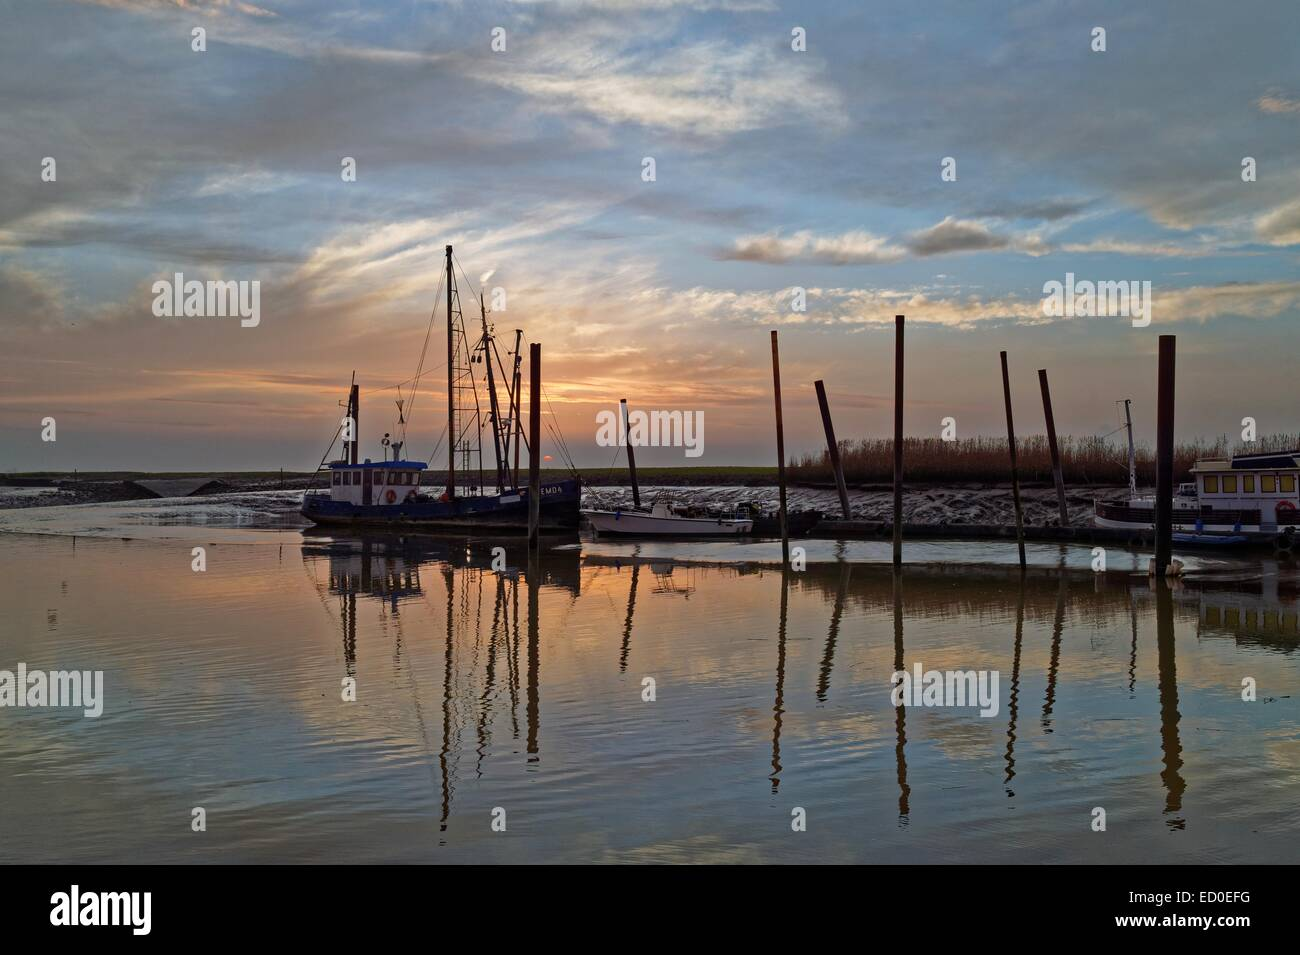 Germany, Petkum, Windless evening in small harbor - Stock Image